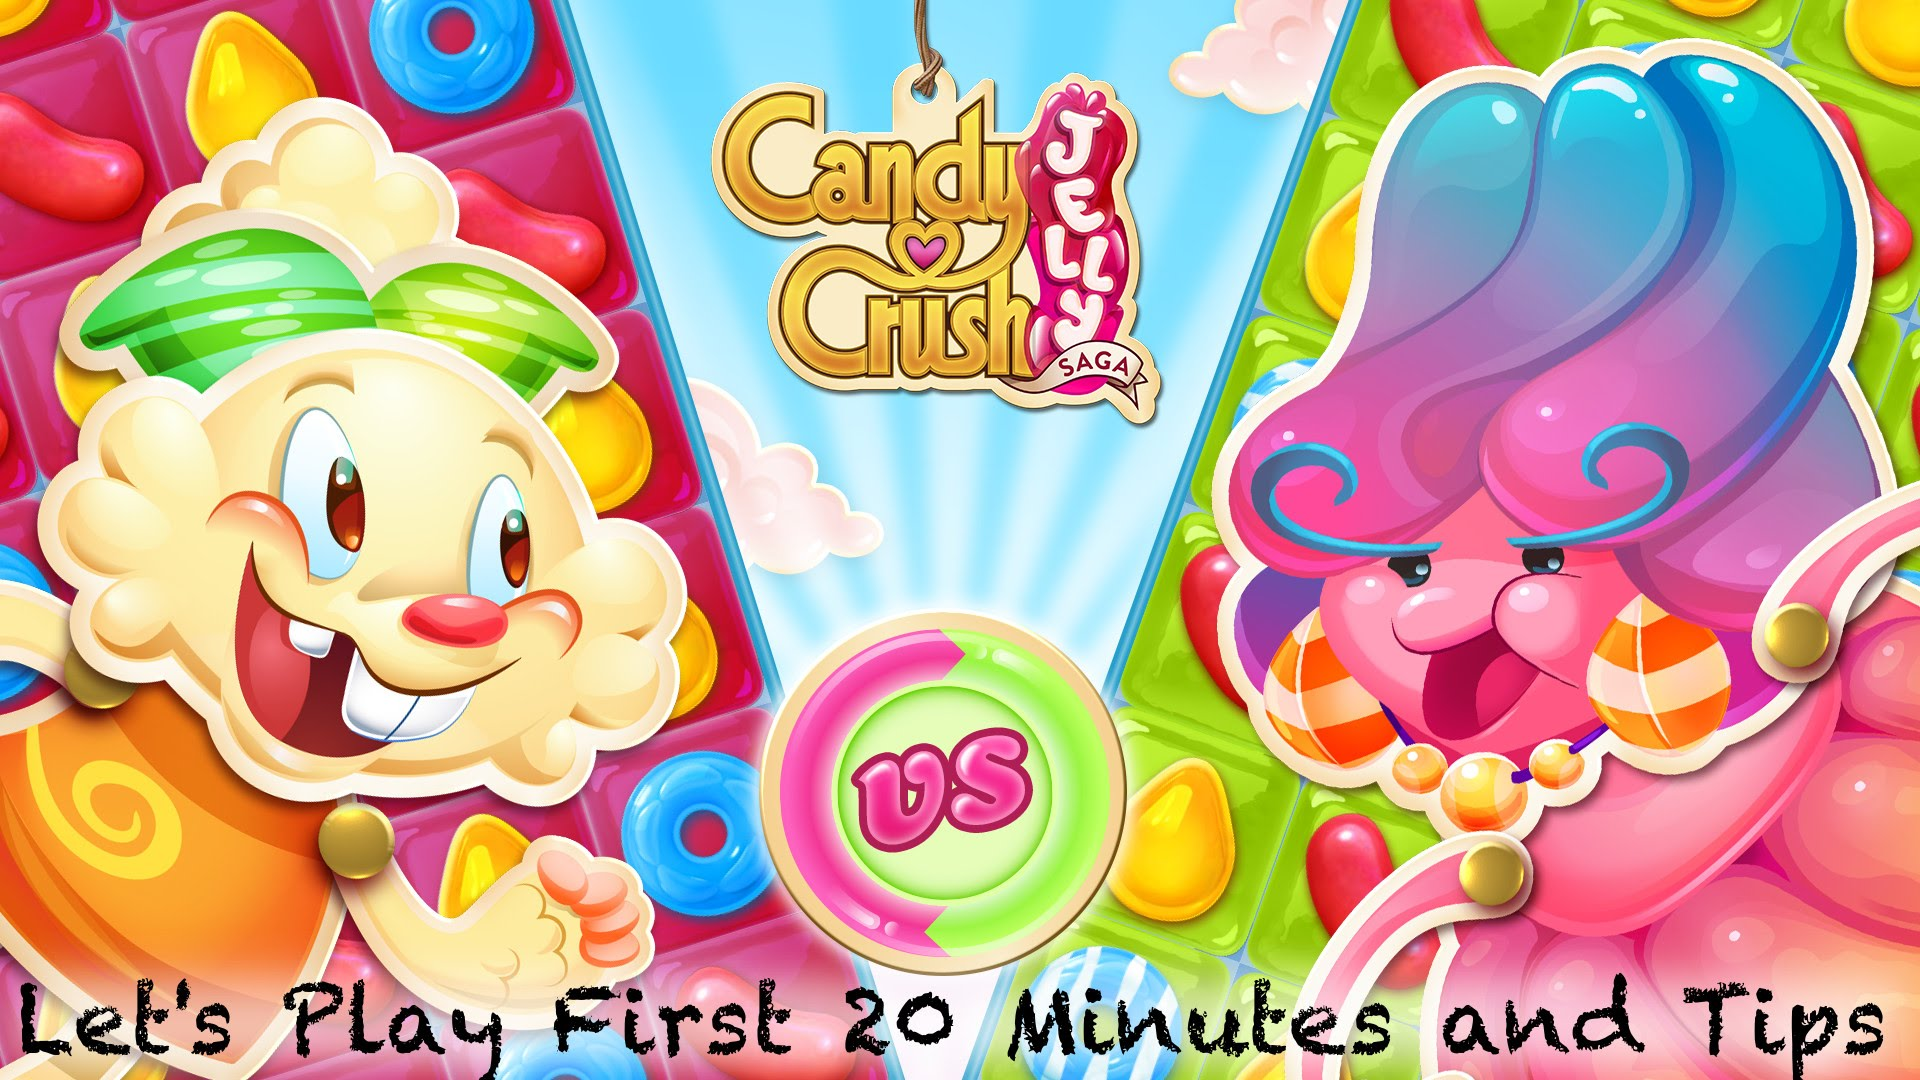 Let's Play Candy Crush Jelly Saga – First 20 Mins w/ Bonus Tips